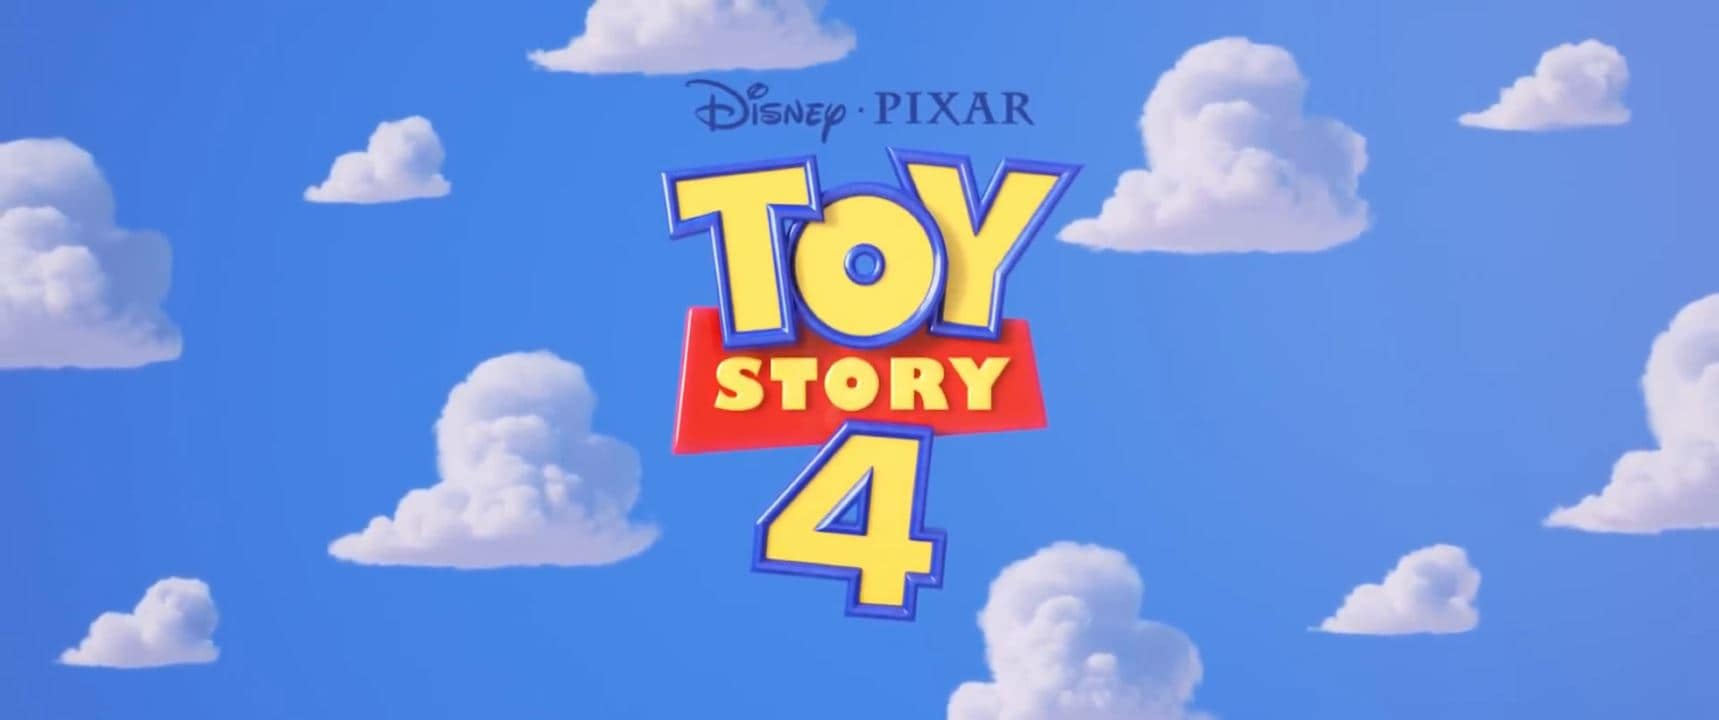 Toy Story 4 Trailer Introduces Newest Character Forky Technology News